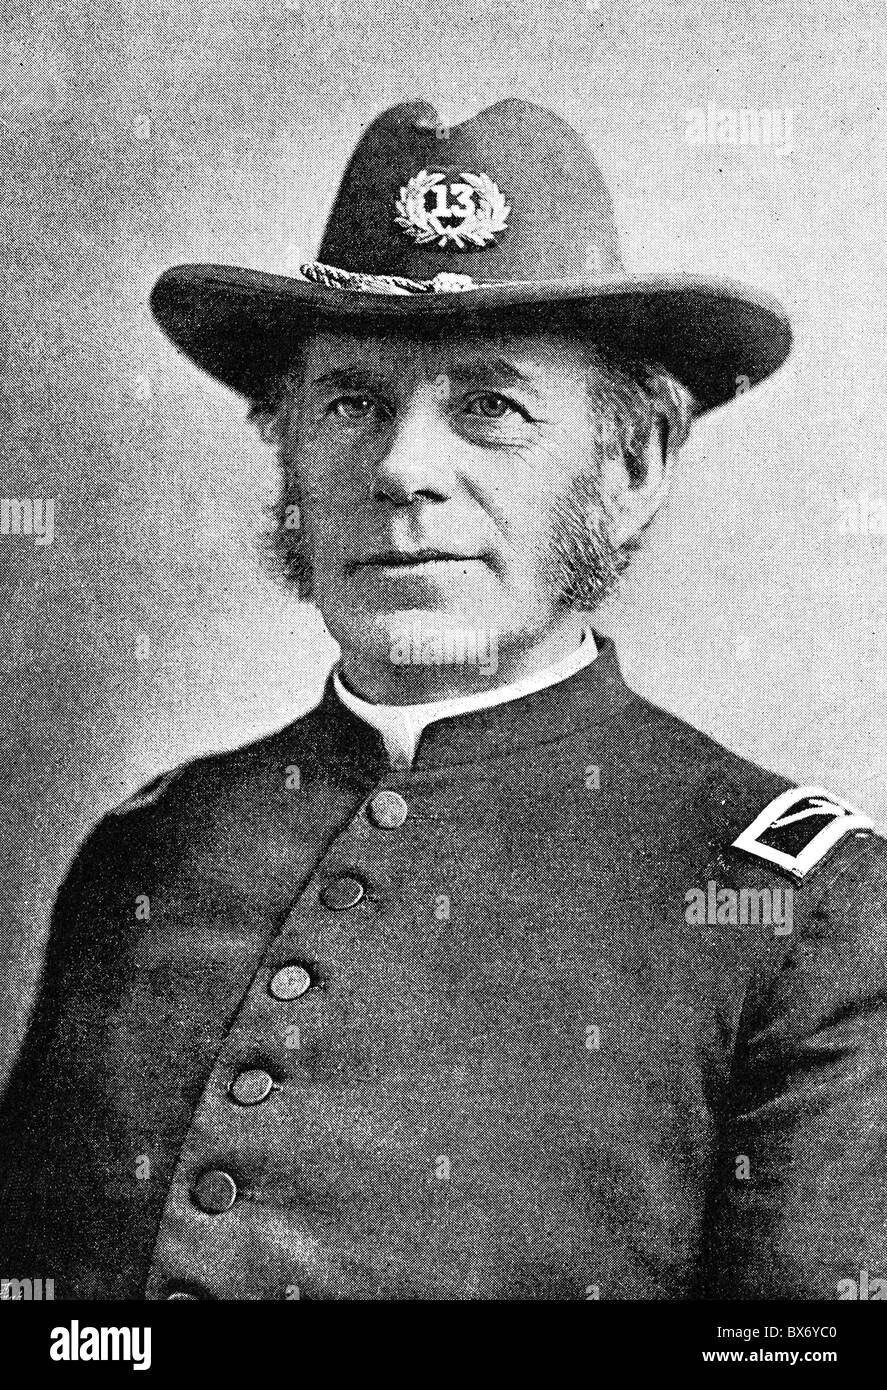 Talmage, Thomas De Witt, 7.1.1832 - 12.4.1902, US preacher, portrait, in uniform, late 19th century, Additional - Stock Image